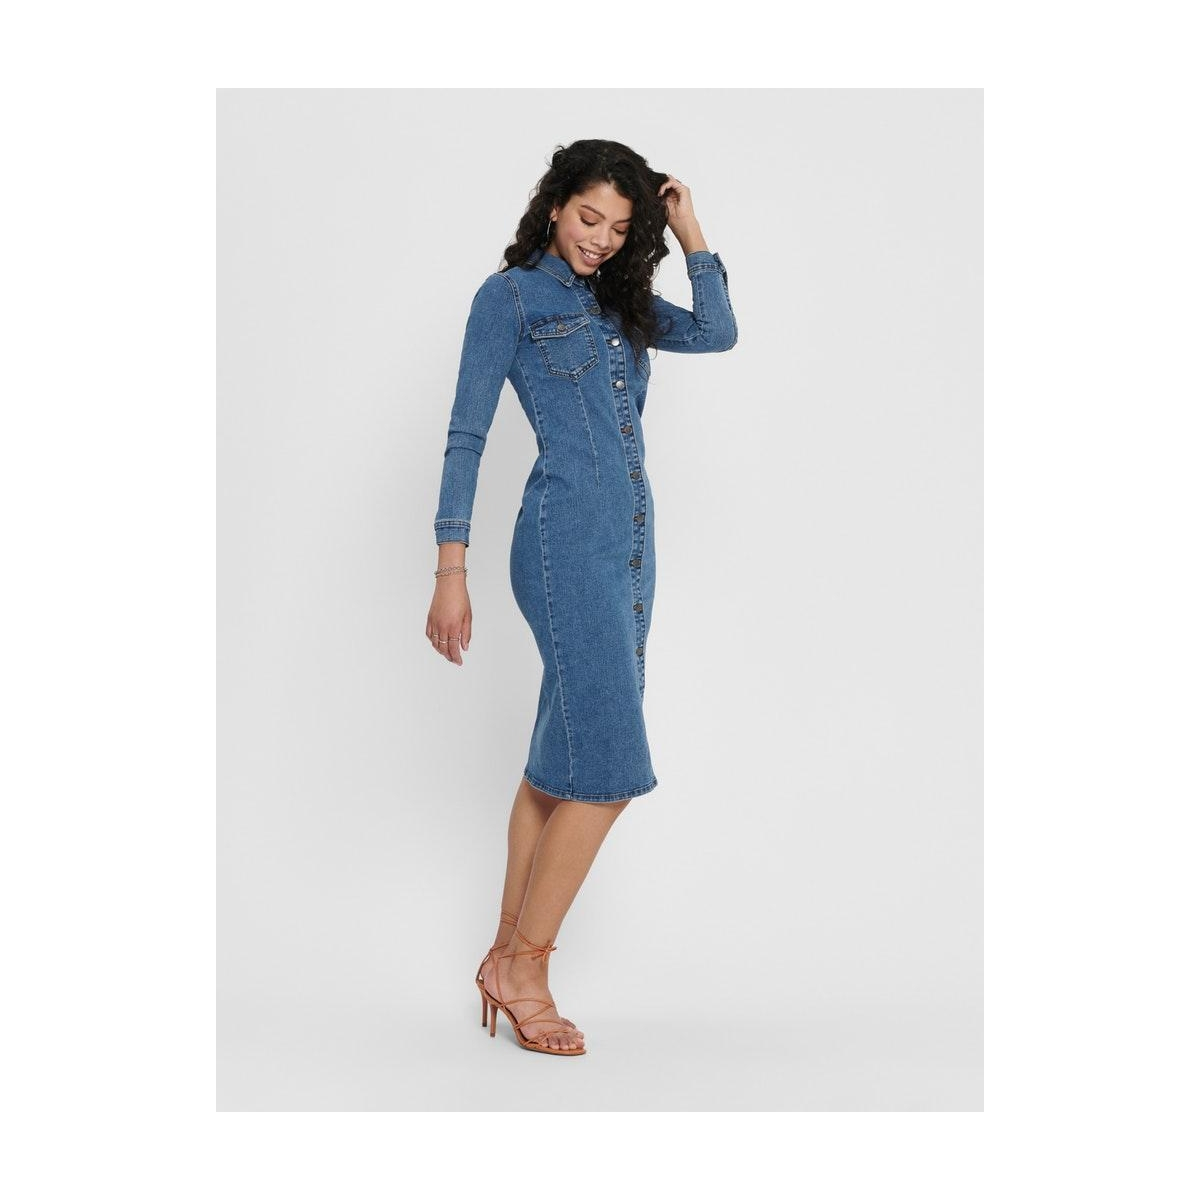 jdynew juicy long denim dress box d 15189323 jacqueline de yong jurk medium blue denim